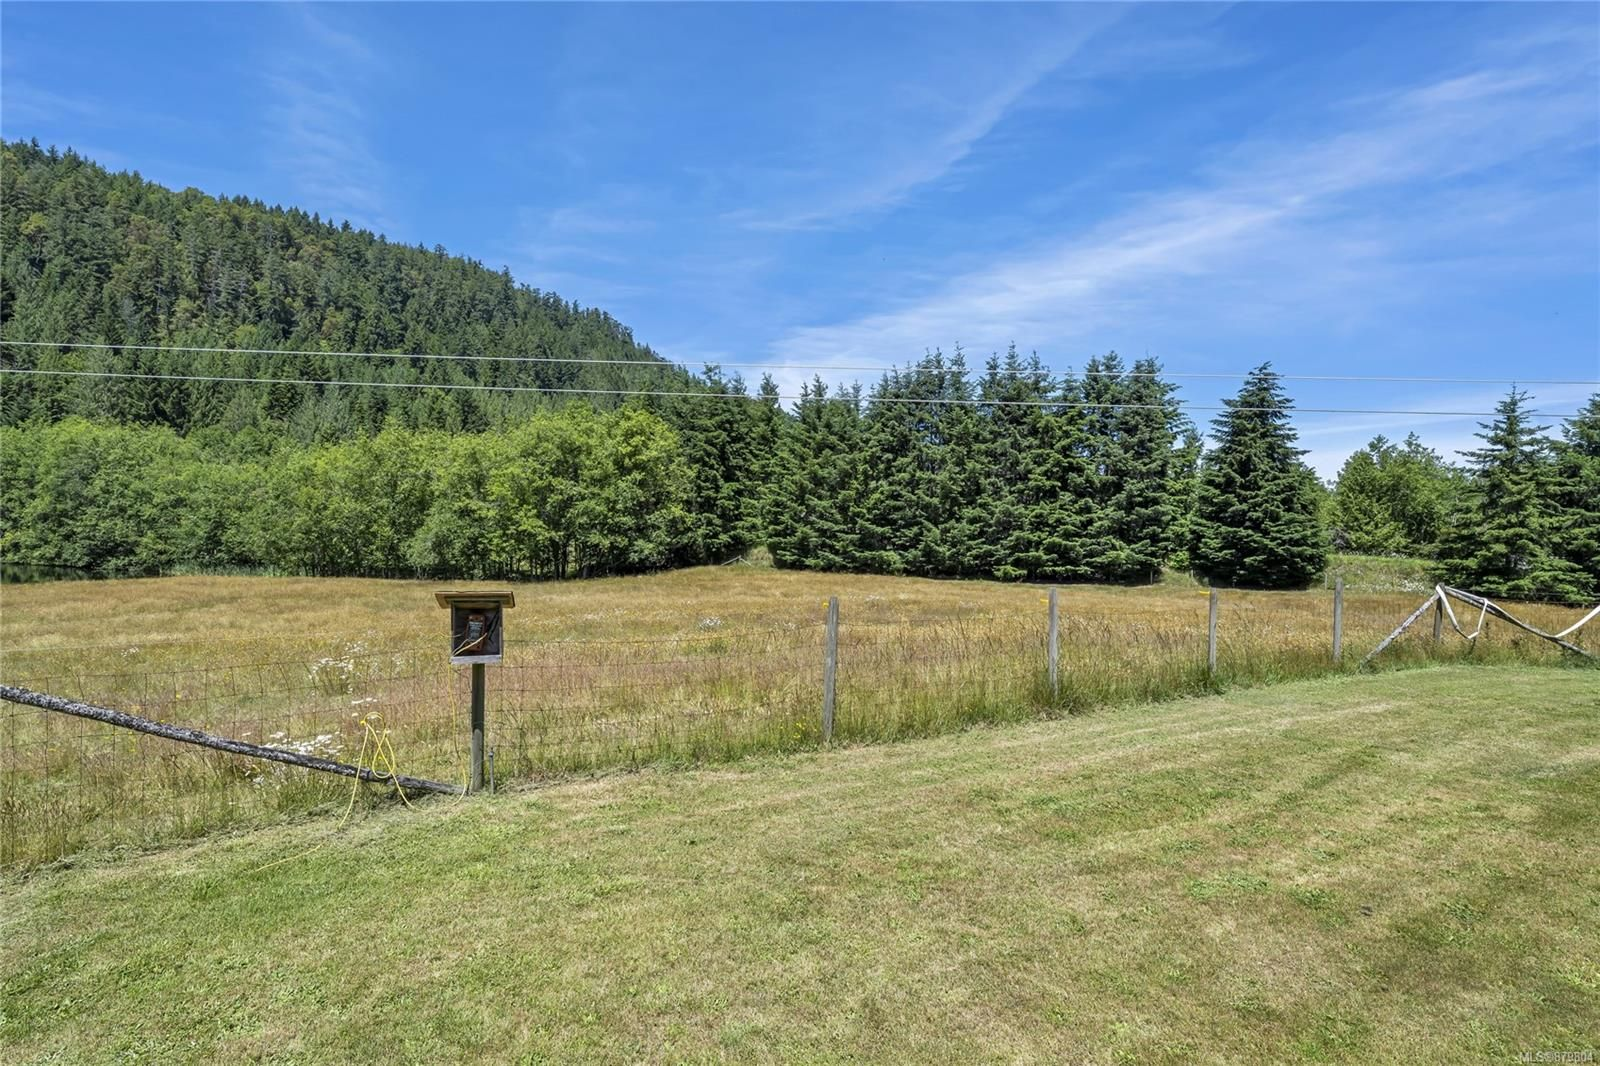 Photo 23: Photos: 3596 Riverside Rd in : ML Cobble Hill Manufactured Home for sale (Malahat & Area)  : MLS®# 879804